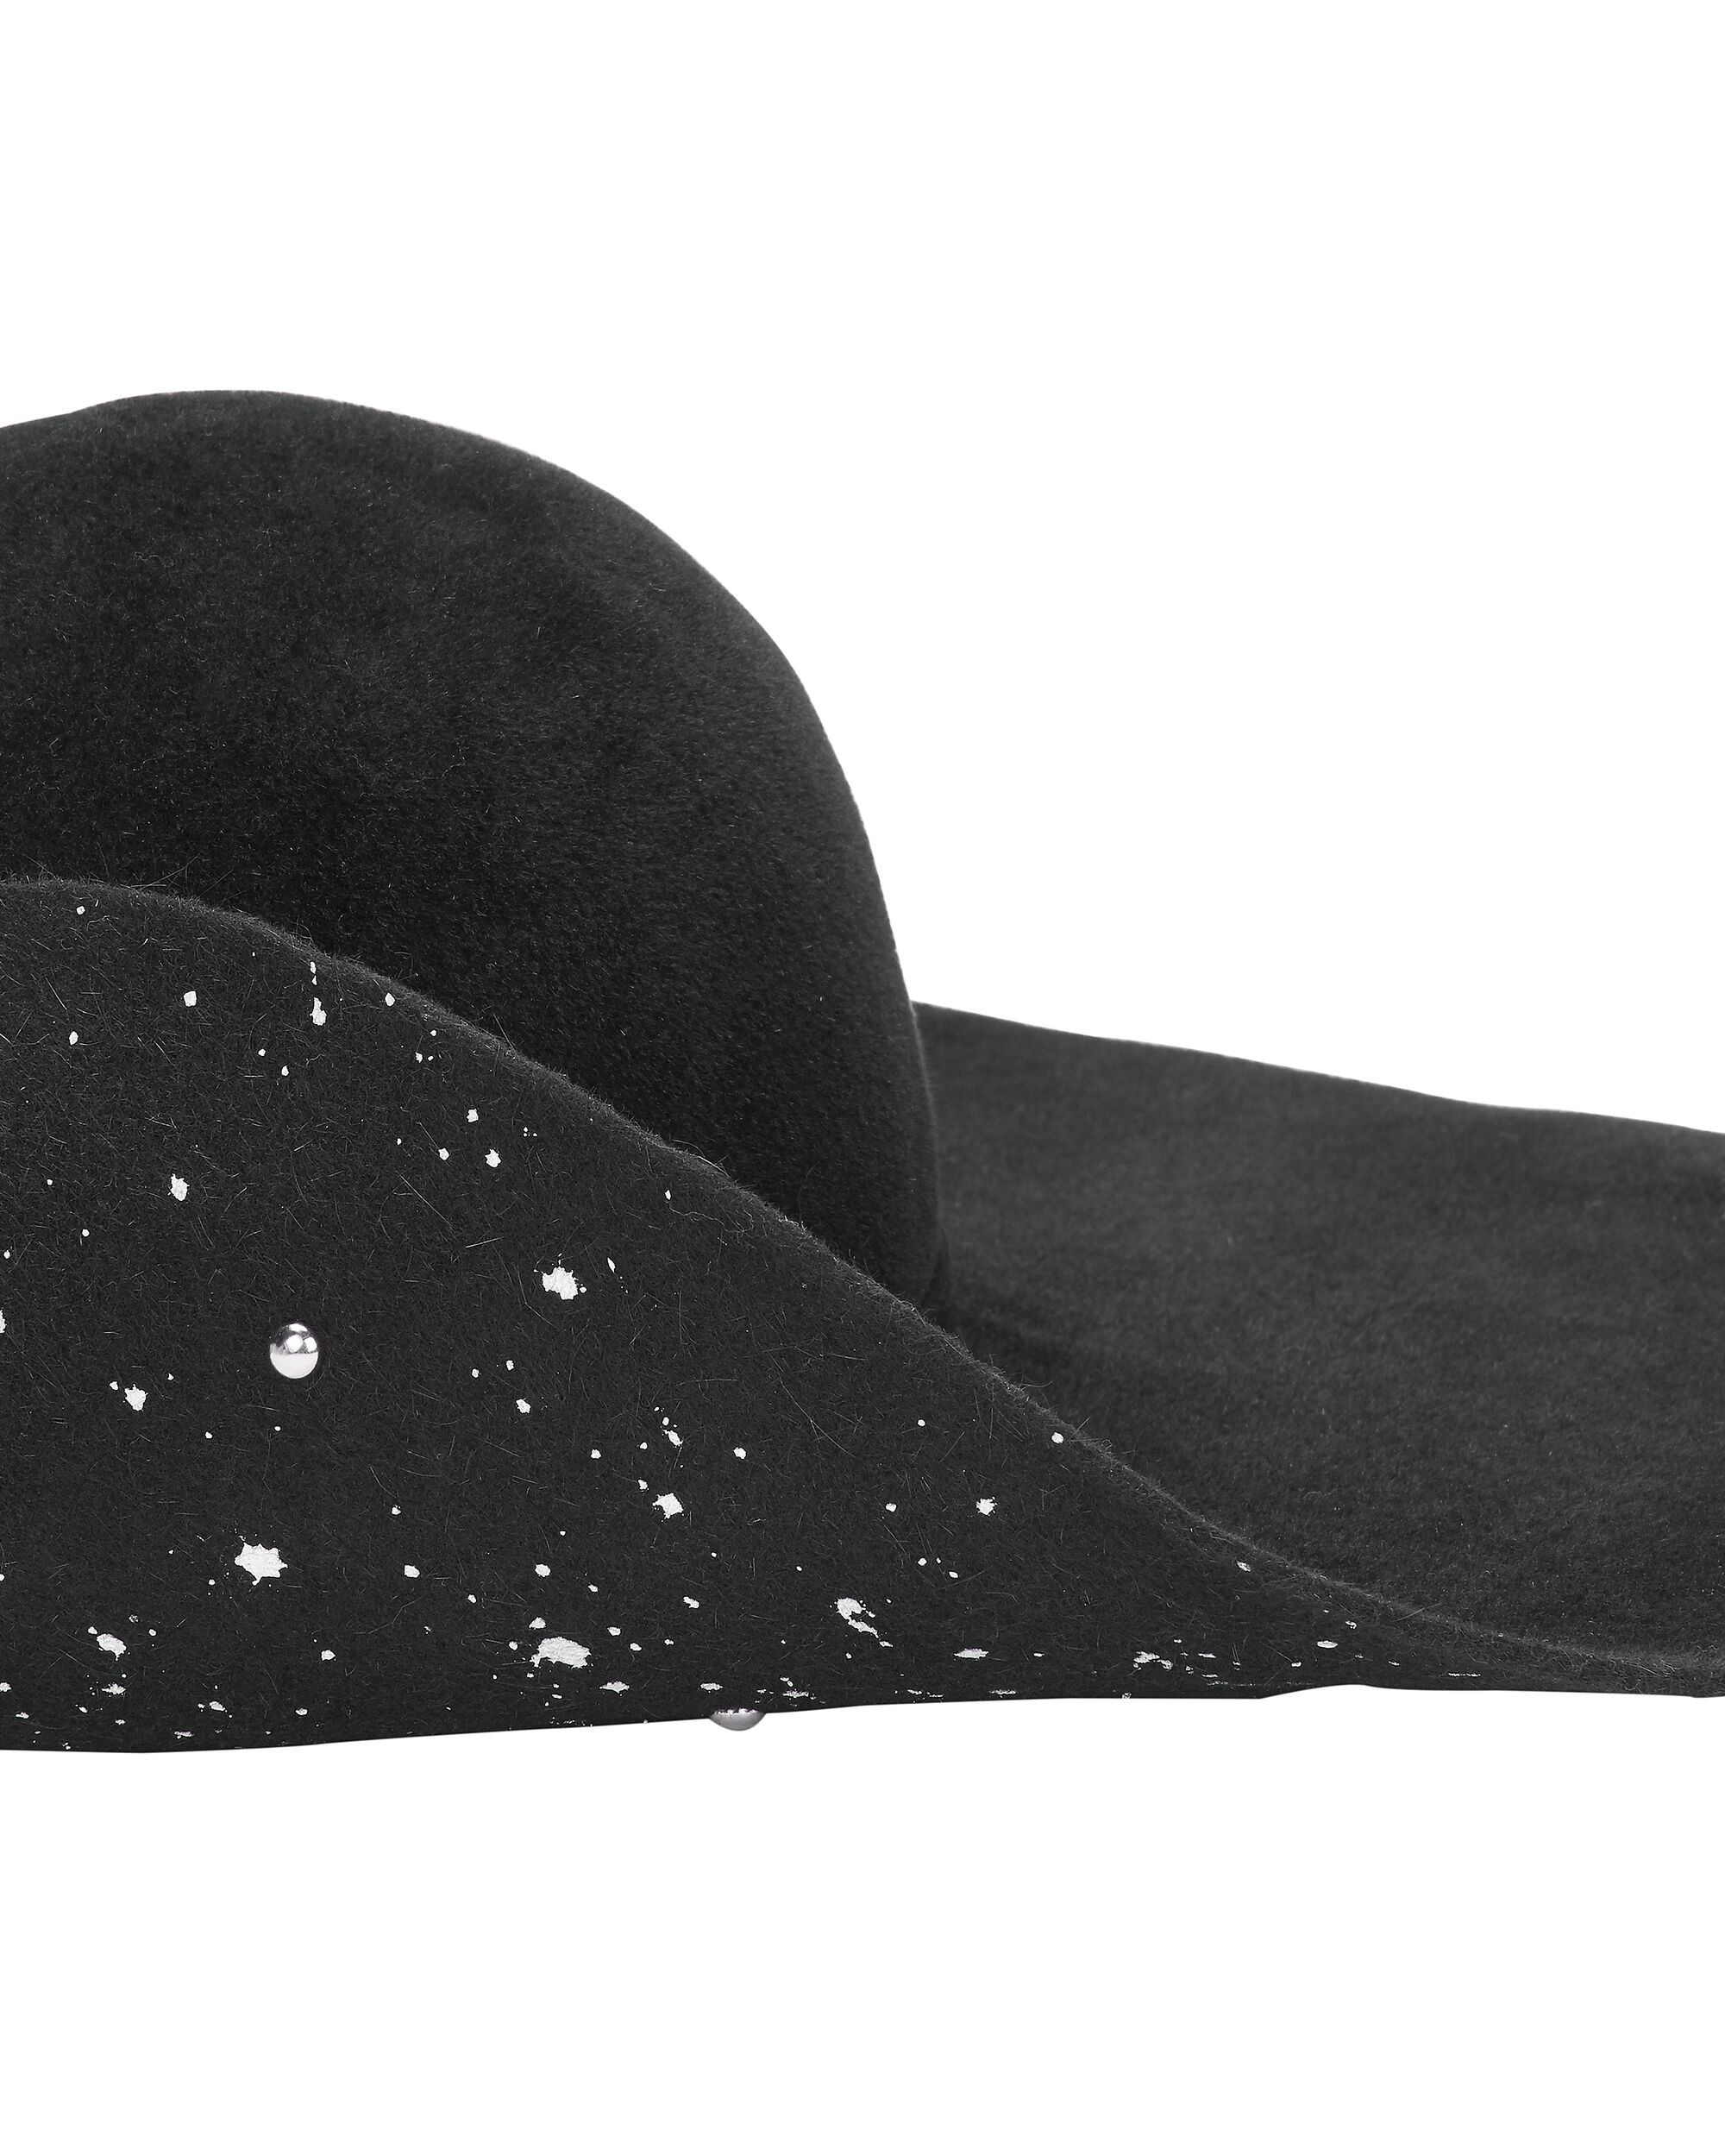 Belita Velour Black Hat, BLACK, hi-res